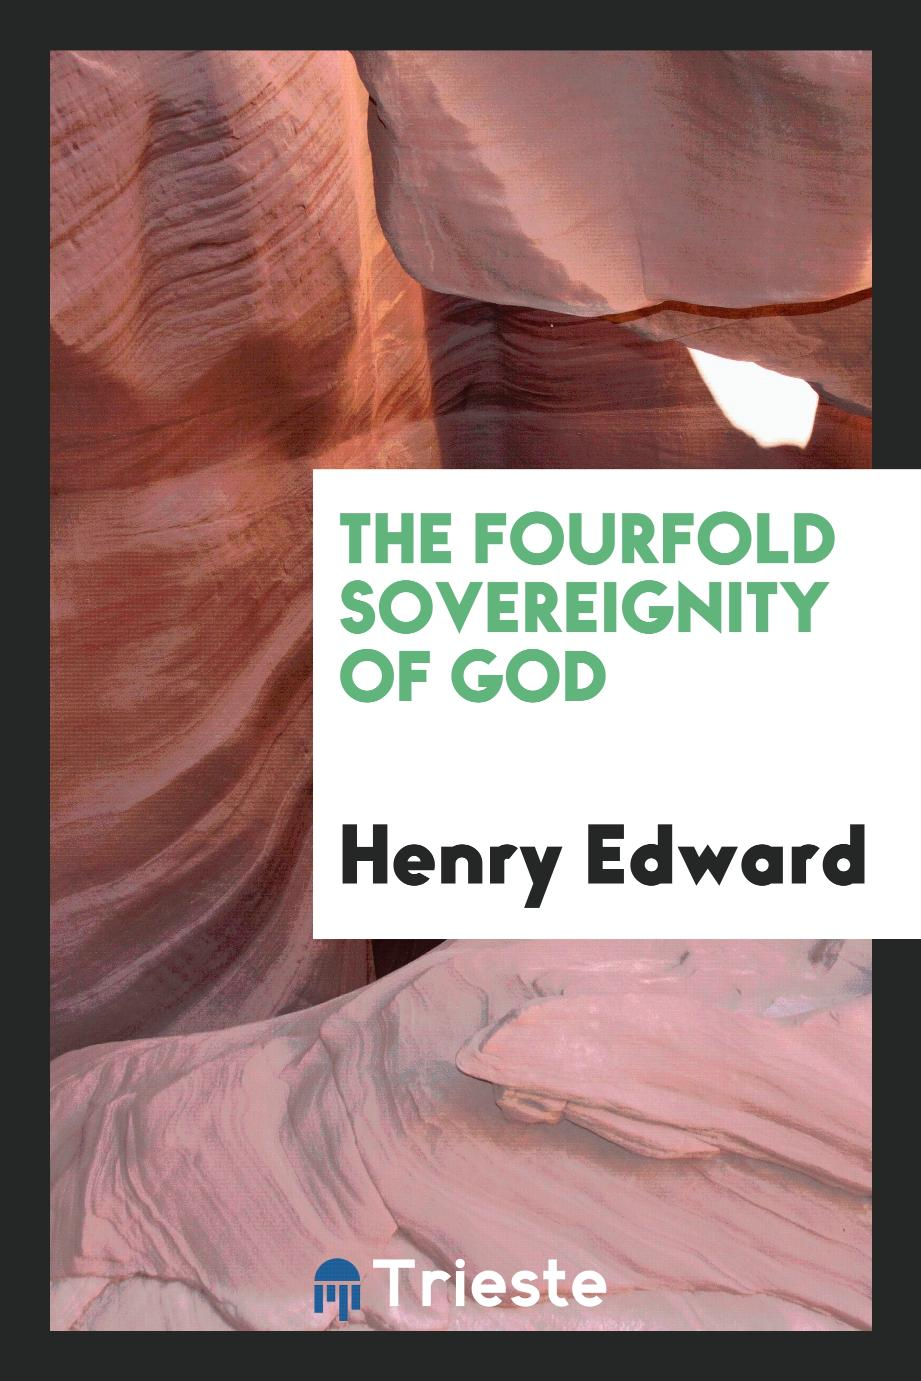 The Fourfold Sovereignty of God